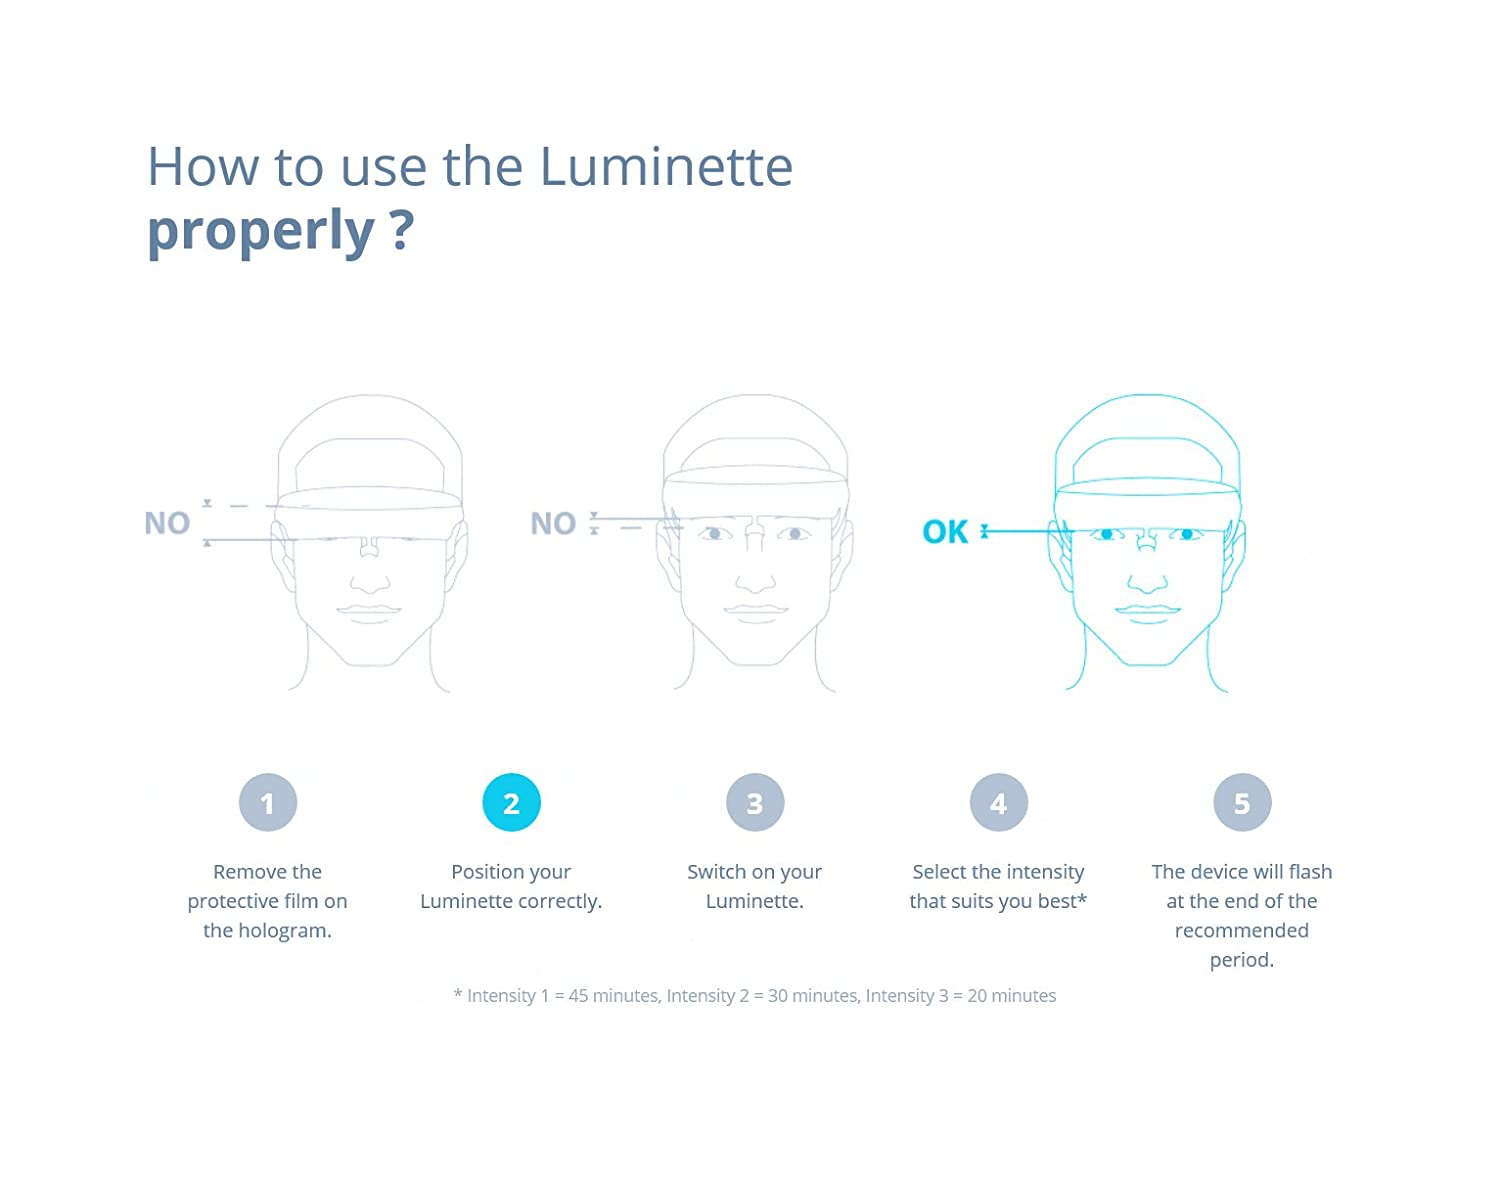 Luminette 2 Sad Bright Light Therapy Glasses More 3 Way Switch Diagnosis Than 60000 Users Have Energy And Sleep Better Health Personal Care